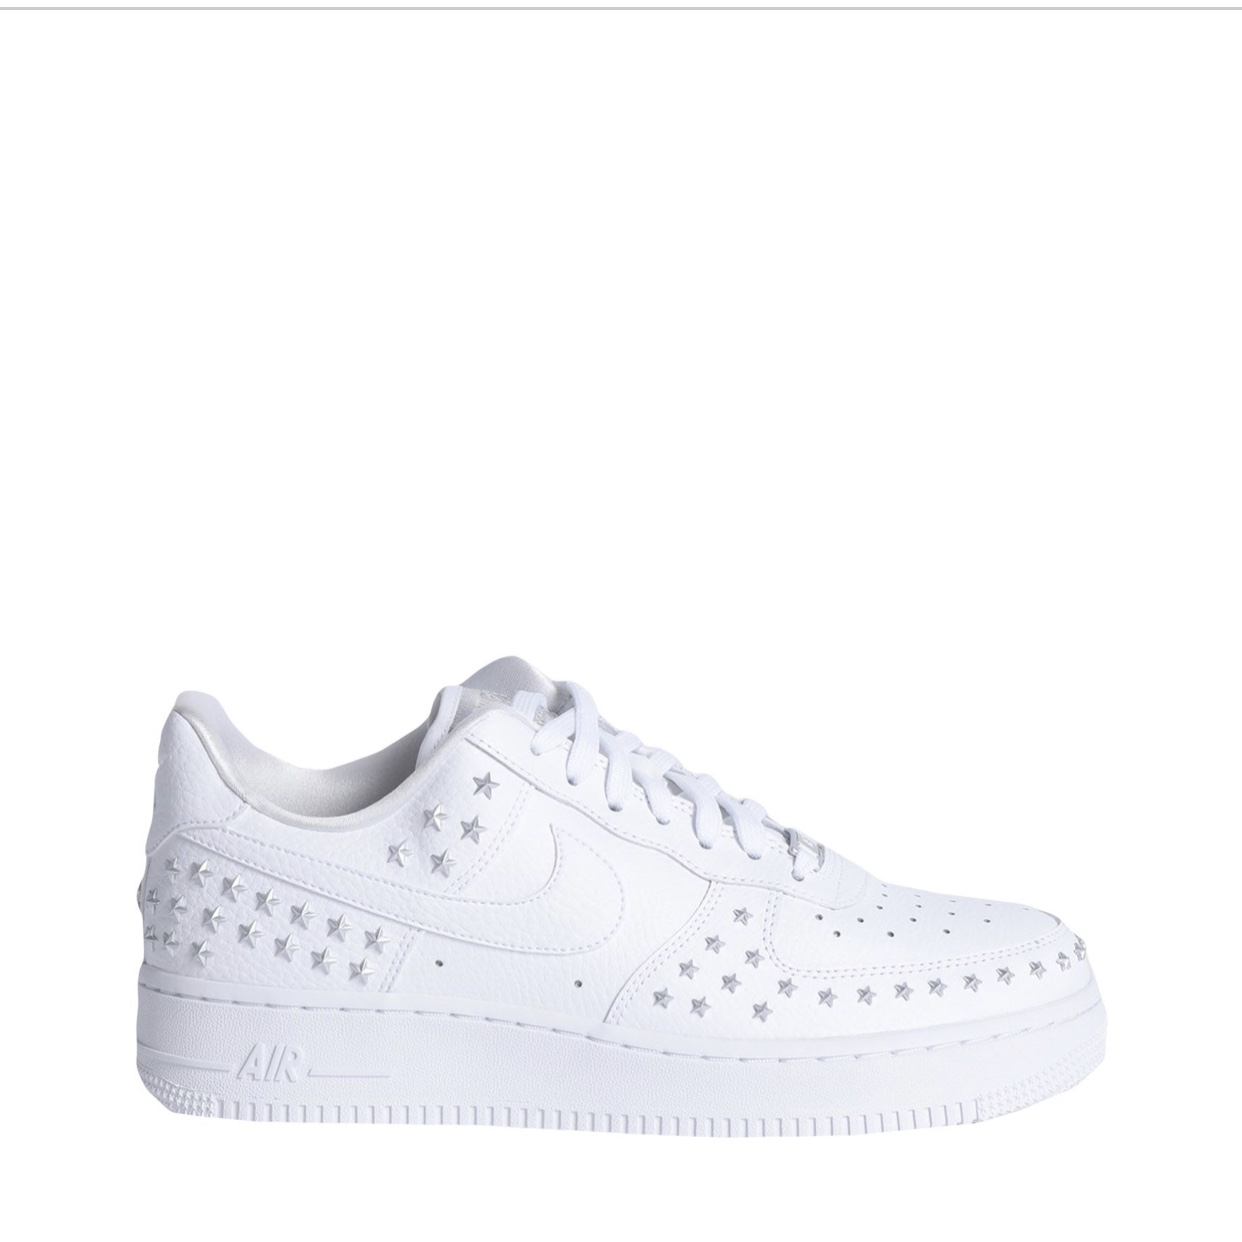 nike air force 1 con borchie